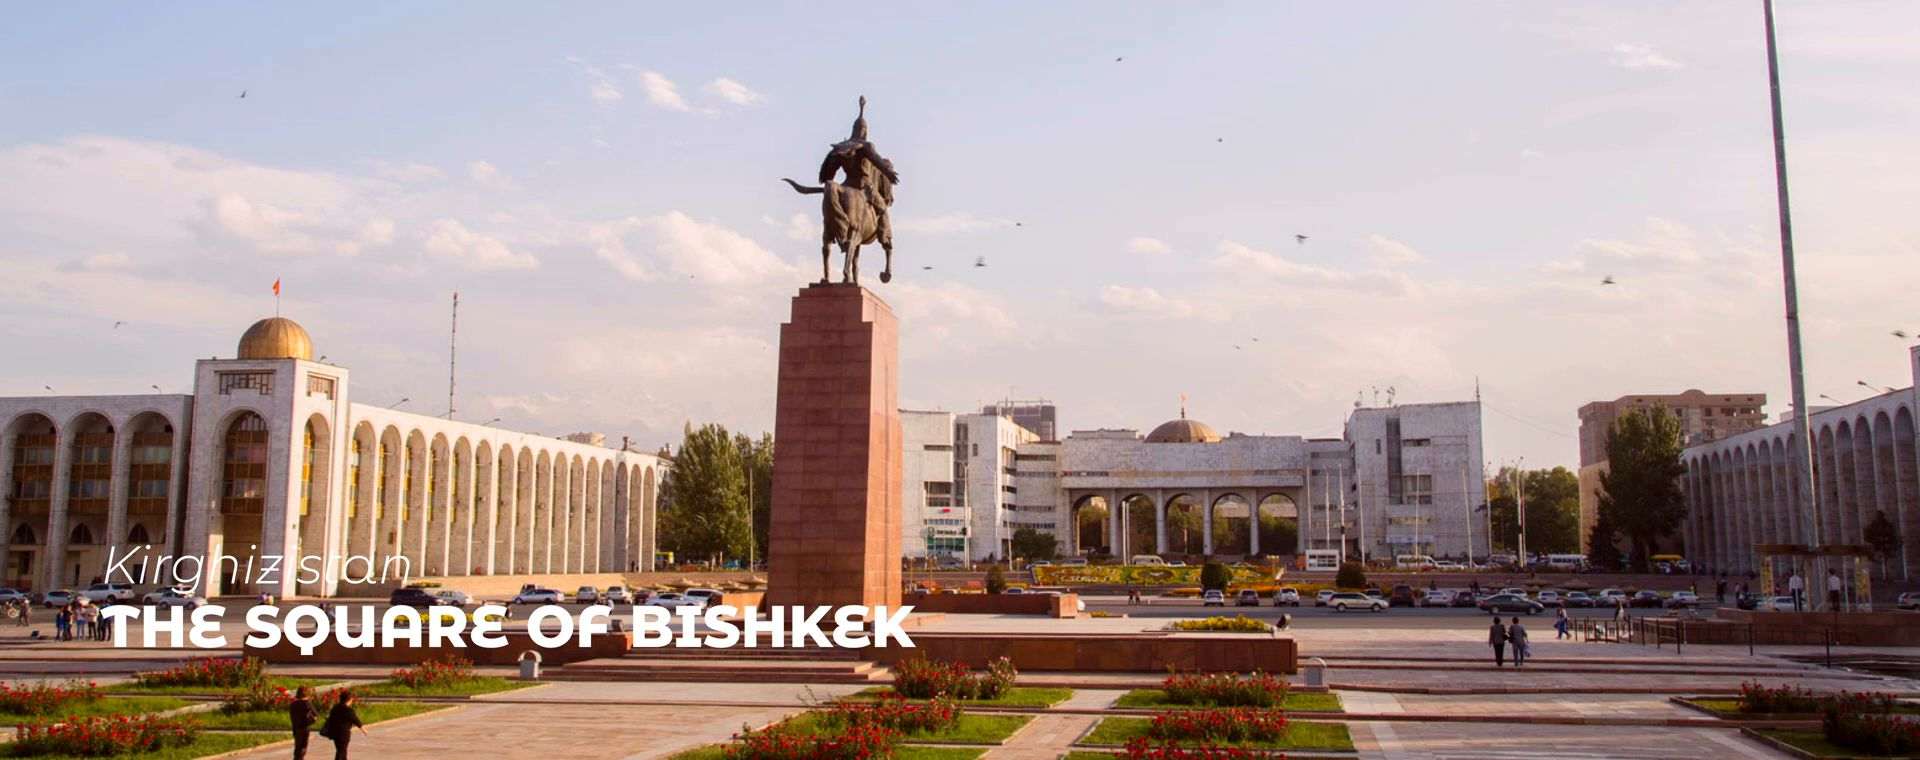 THE SQUARE OF BISHKEK